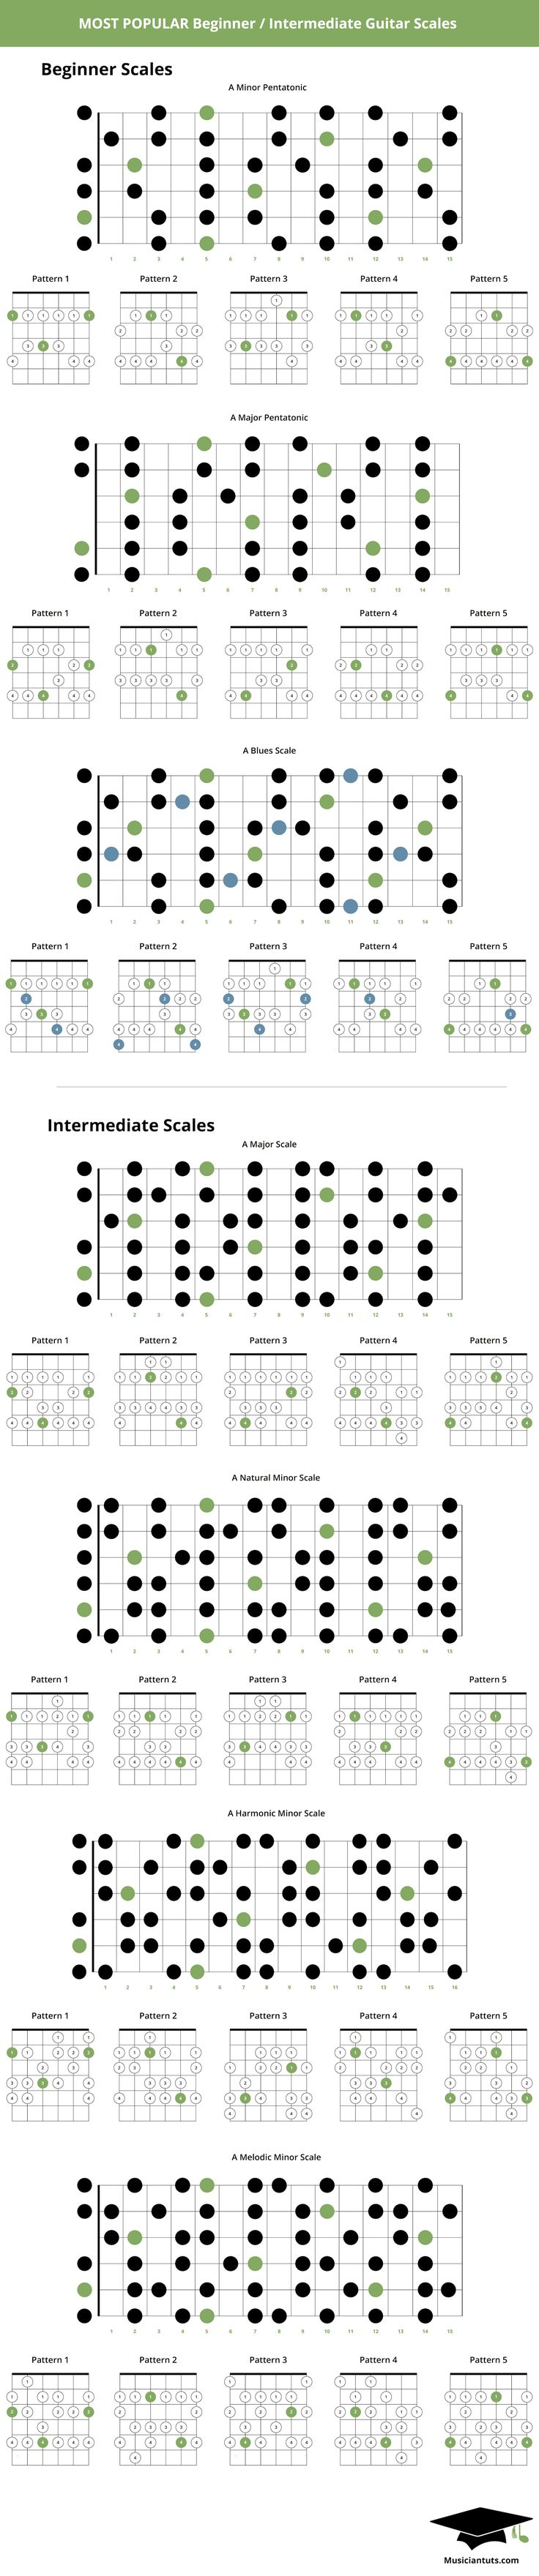 This guitar scales chart lists some of the most important beginner / intermediate guitar scales you should know.